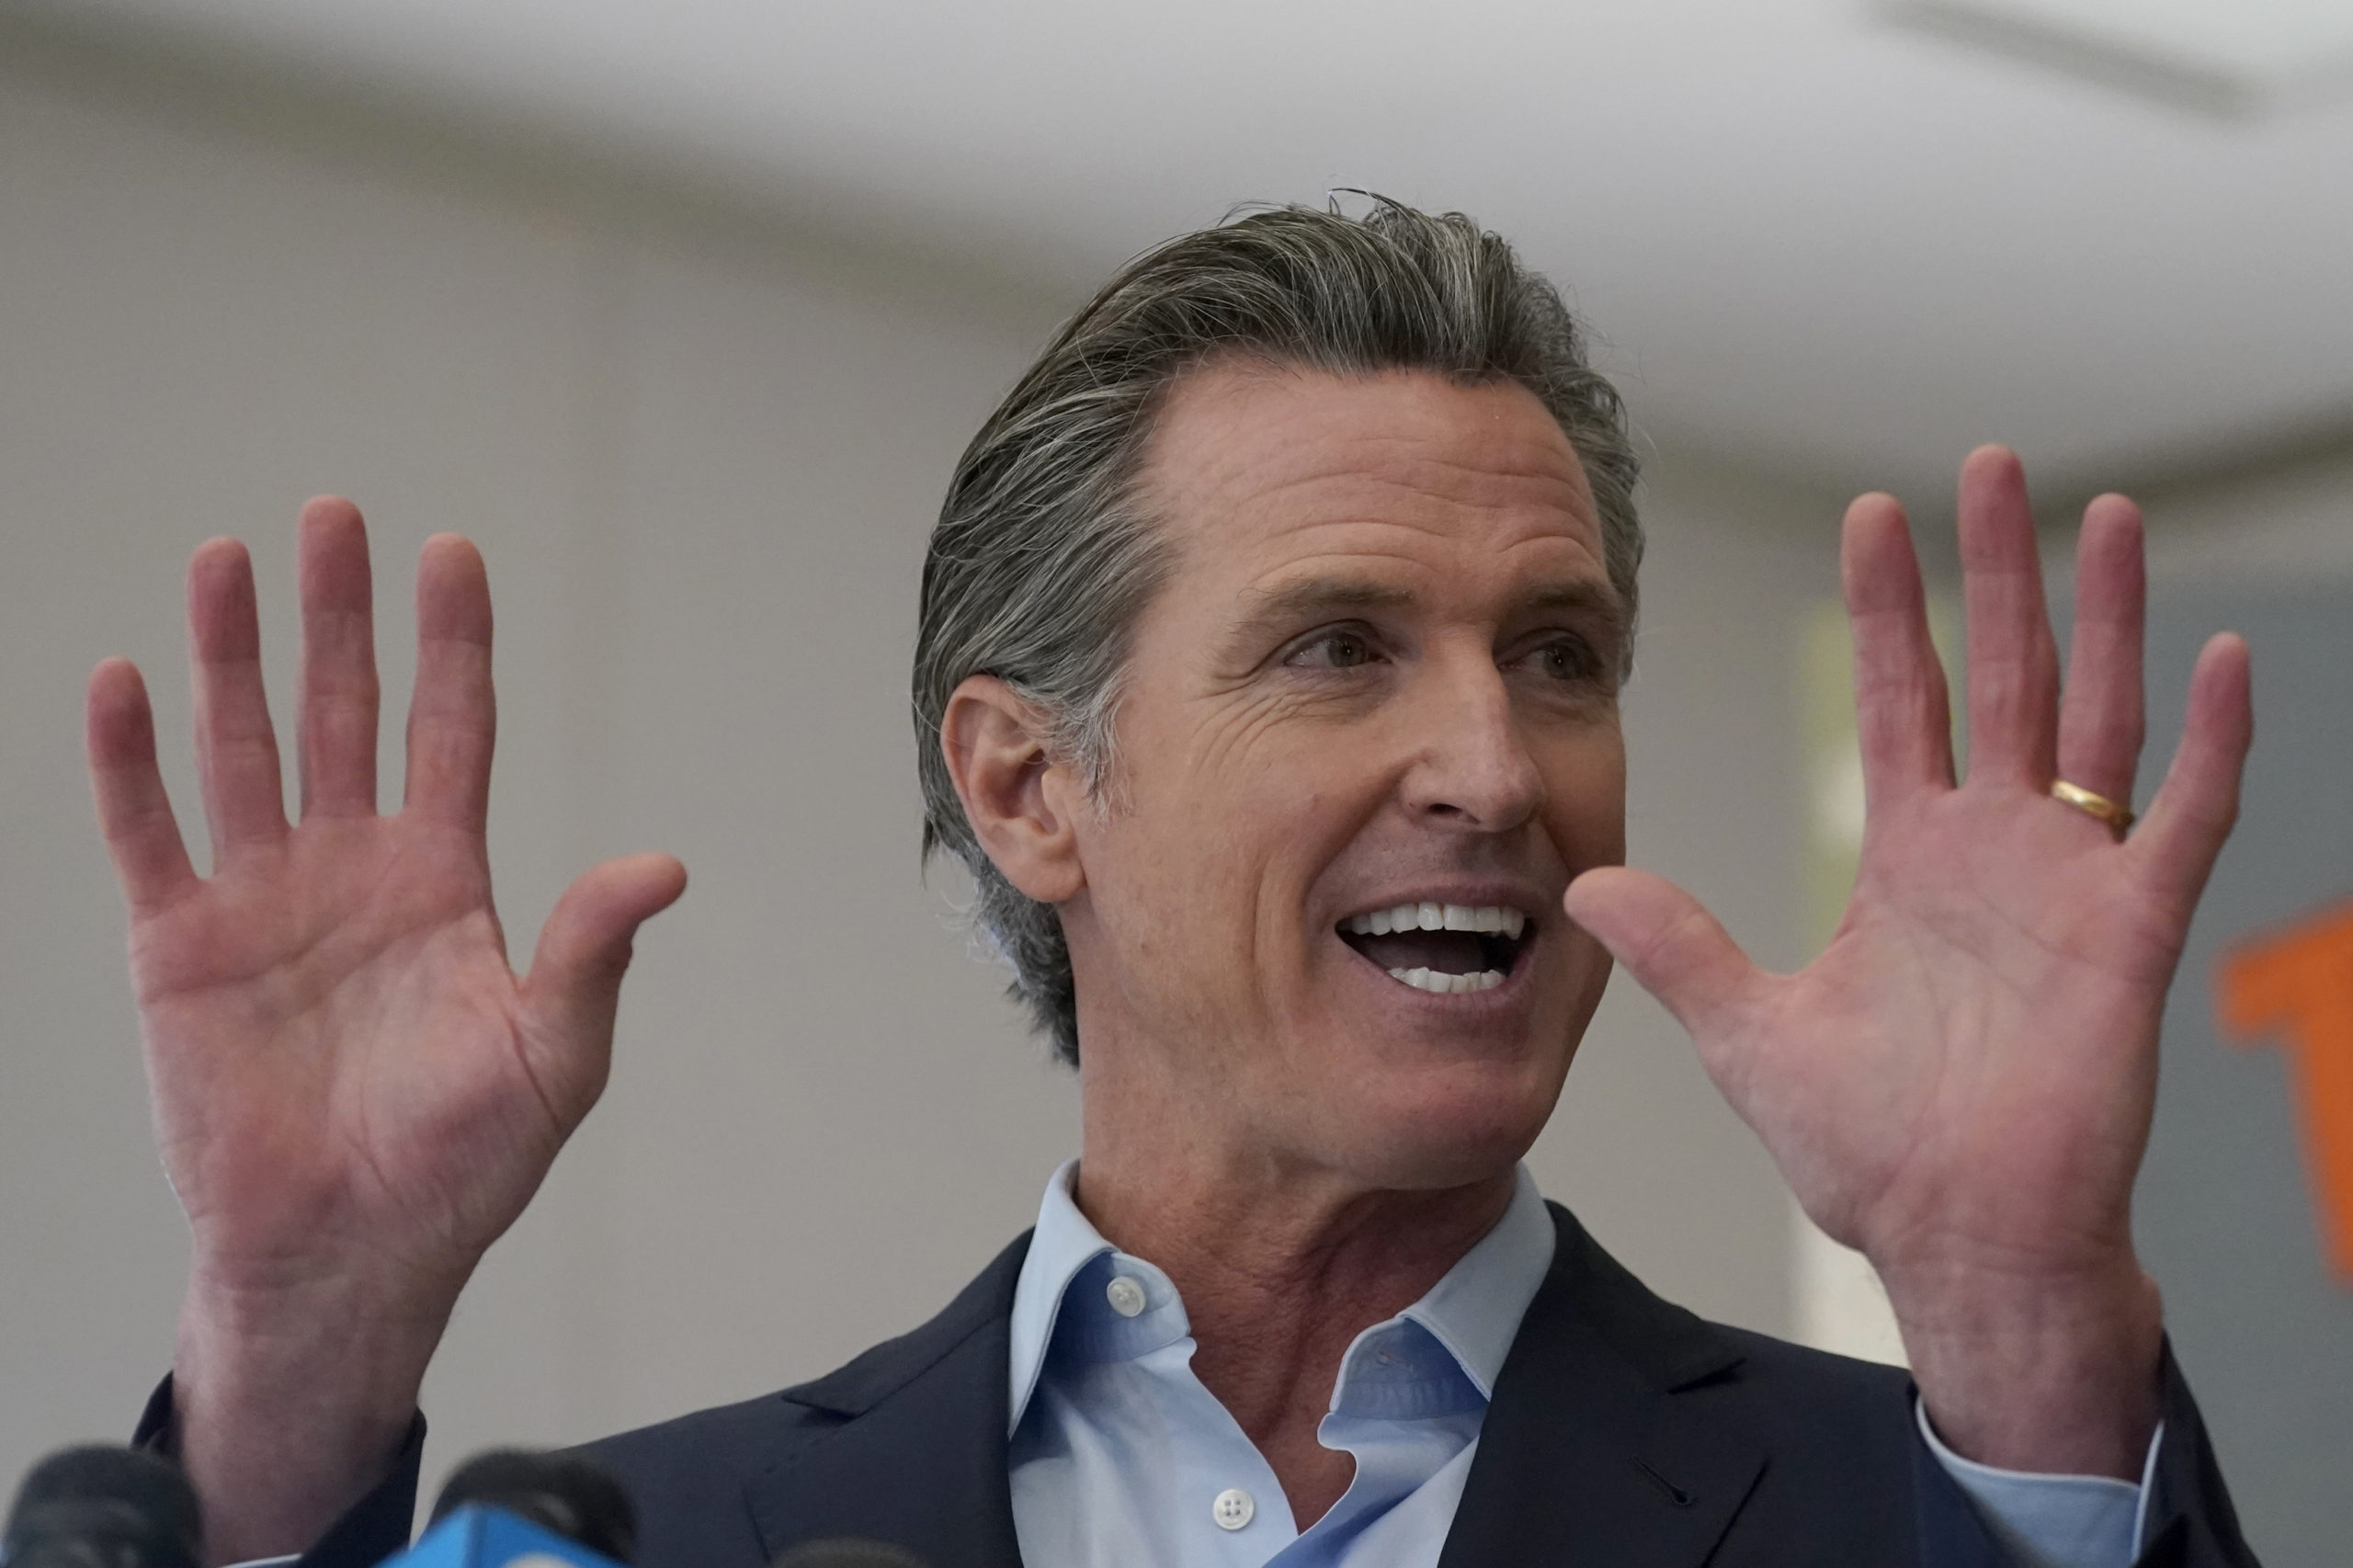 Newsom's vow to reopen California is a high-stakes political gamble